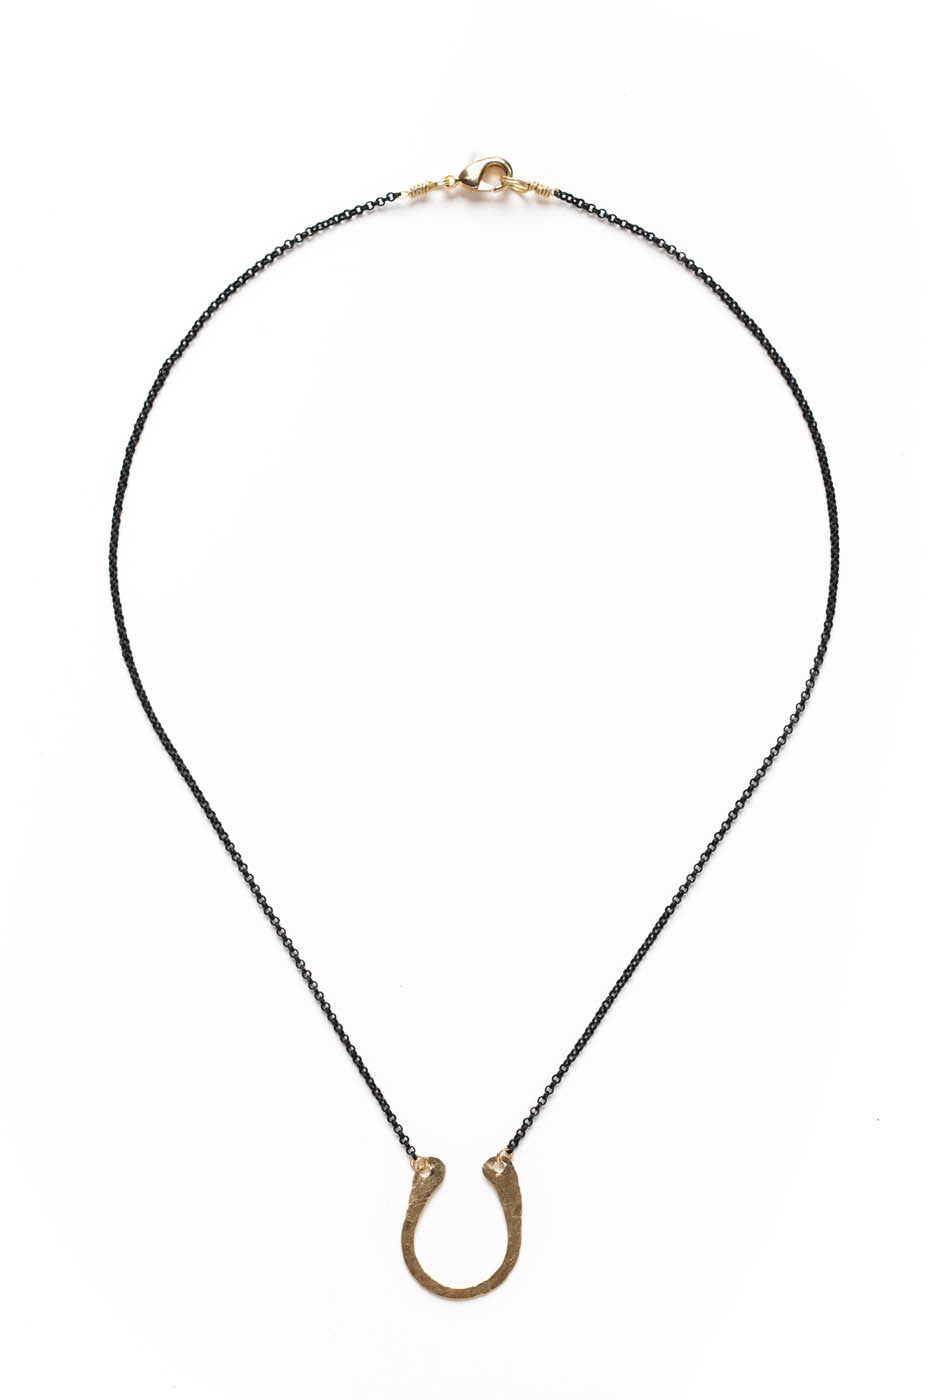 Horseshoe Hammered Goldfill Necklace with Black Chain